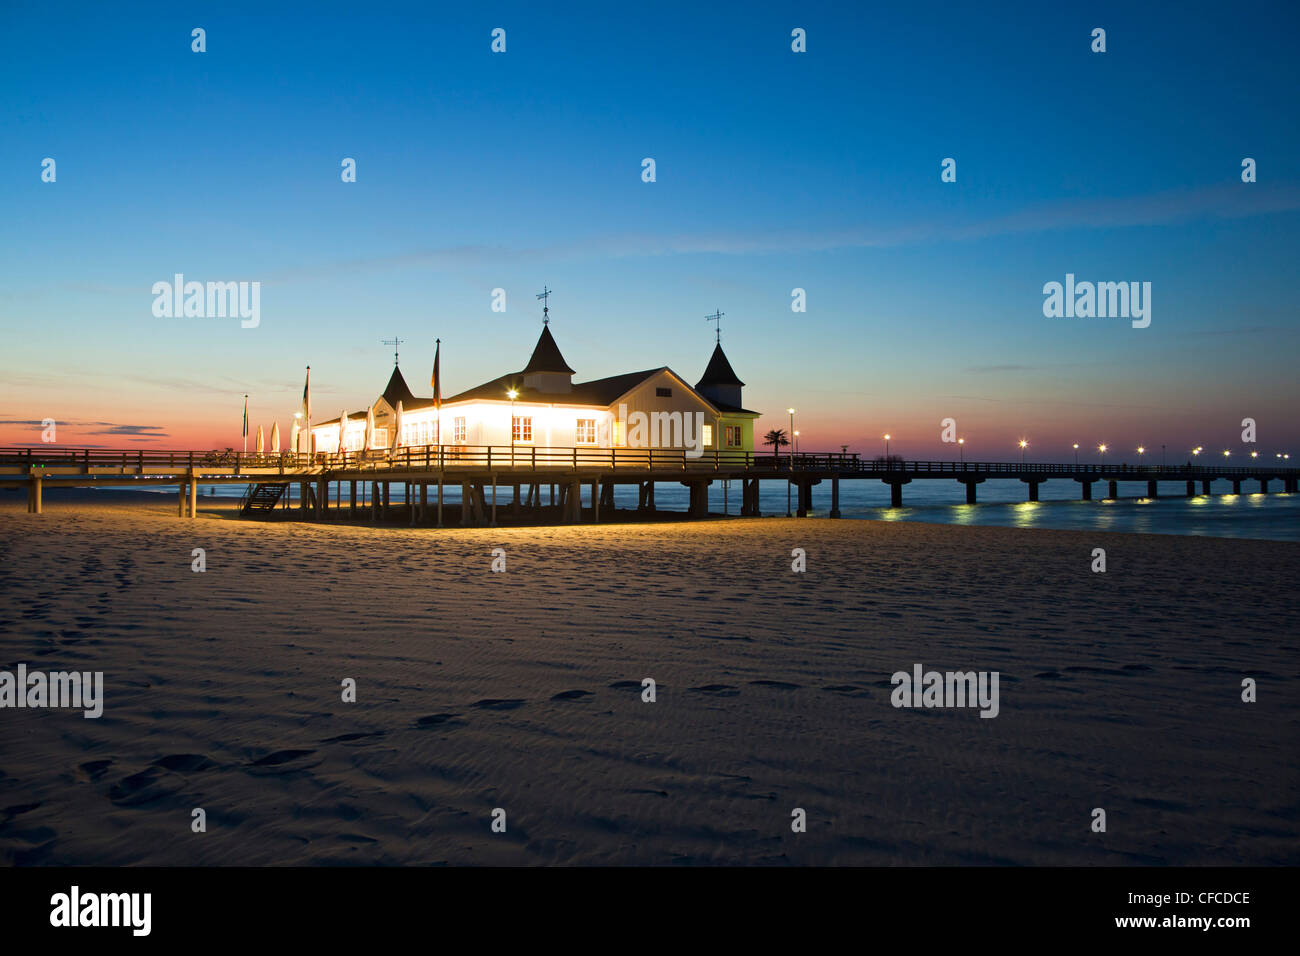 Pier in the evening, Ahlbeck seaside resort, Usedom island, Baltic Sea, Mecklenburg-West Pomerania, Germany - Stock Image